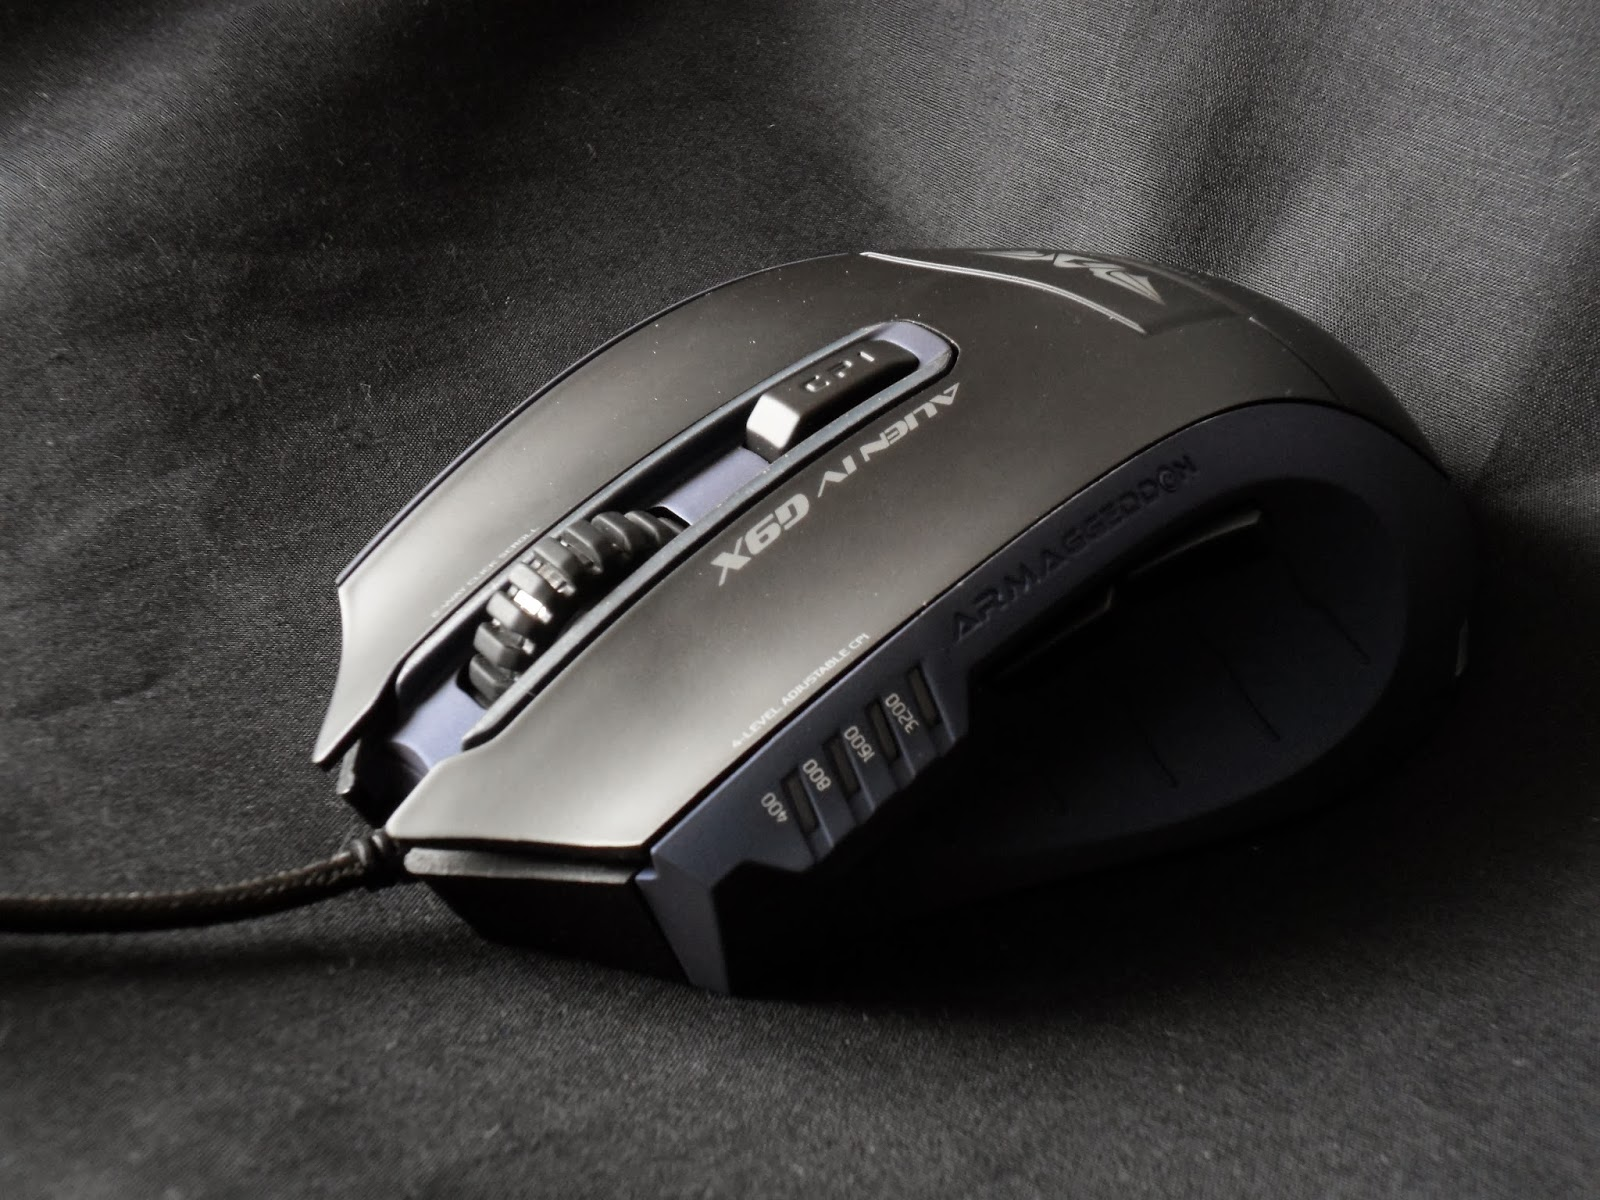 First Look & Review - Armaggeddon Alien IV G9X Optical Gaming Mouse 28